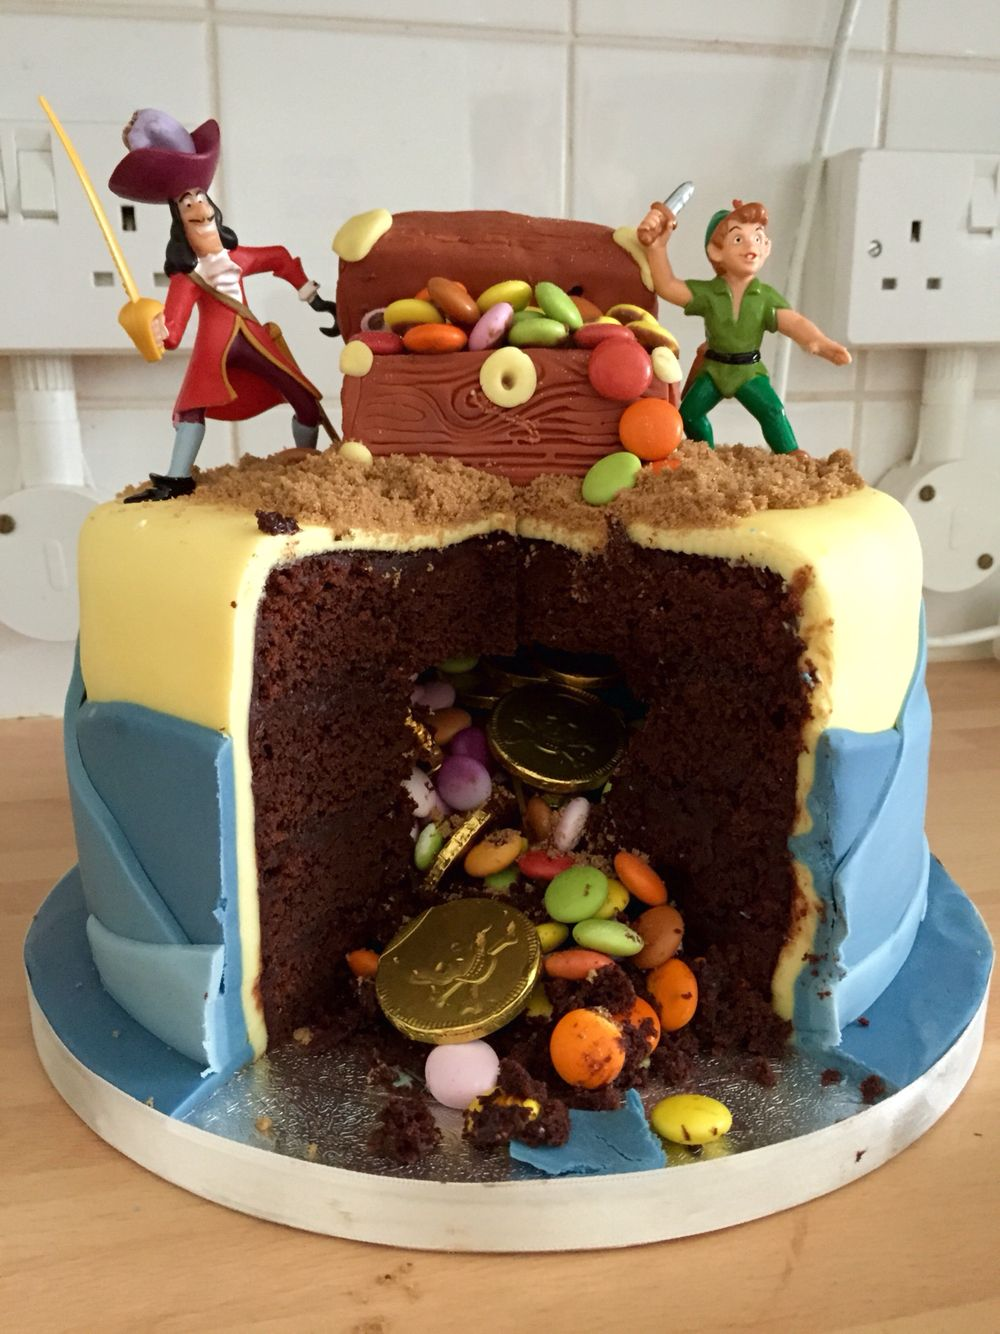 The Secret Inside The Cake Captain Hook Trying Steal Peter Pans